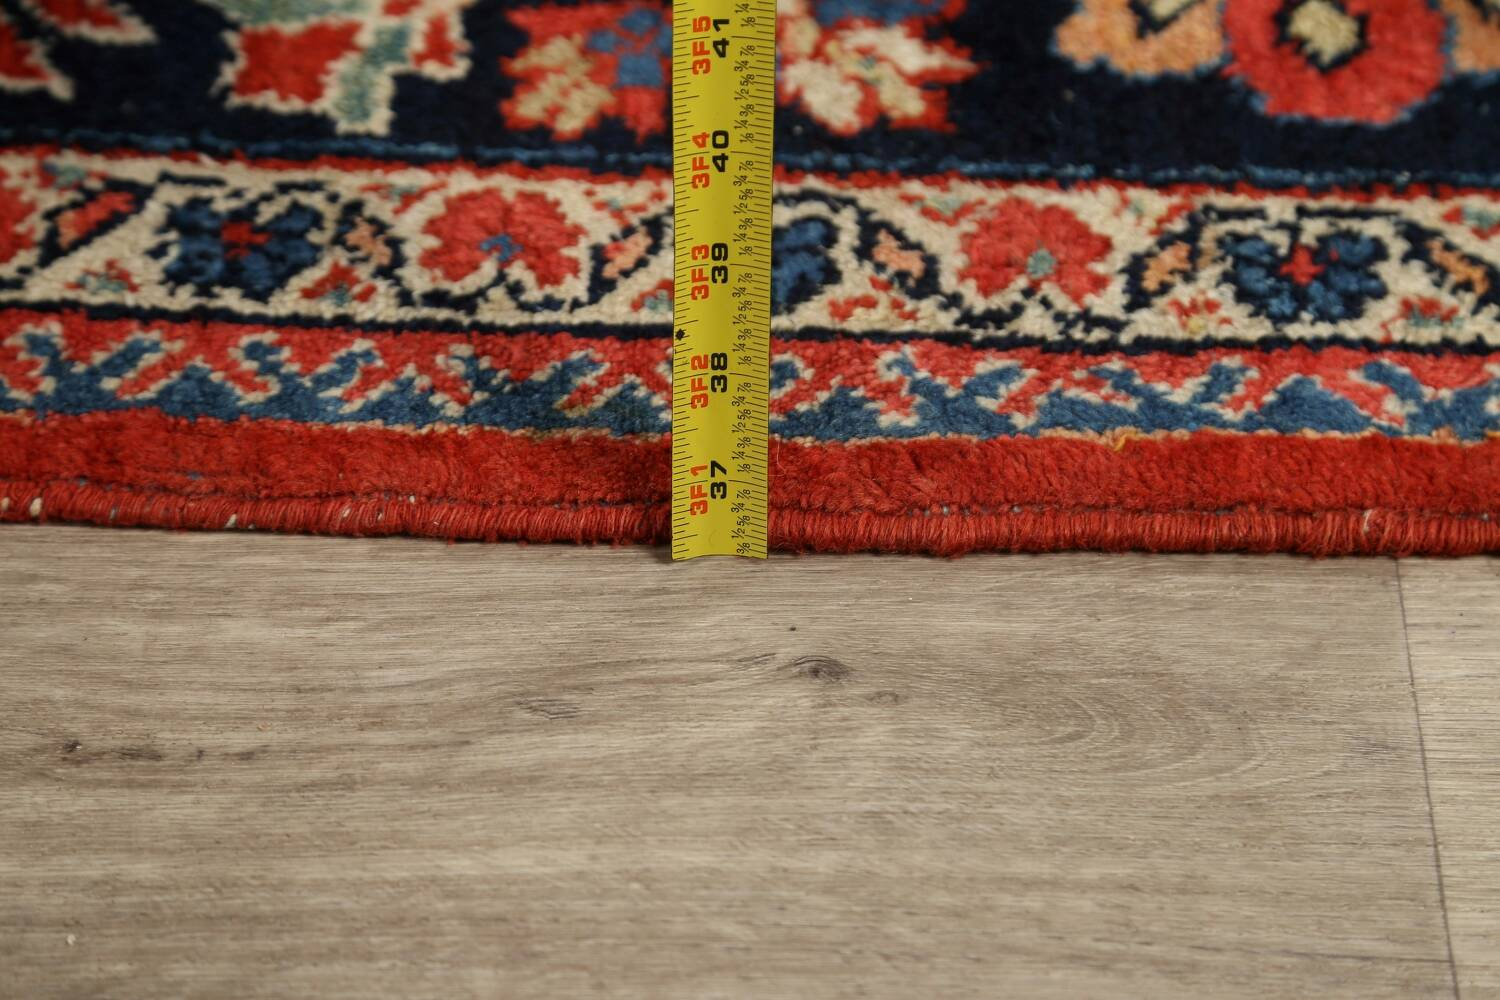 Antique Vegetable Dye Sultanabad Persian Area Rug 9x12 image 18